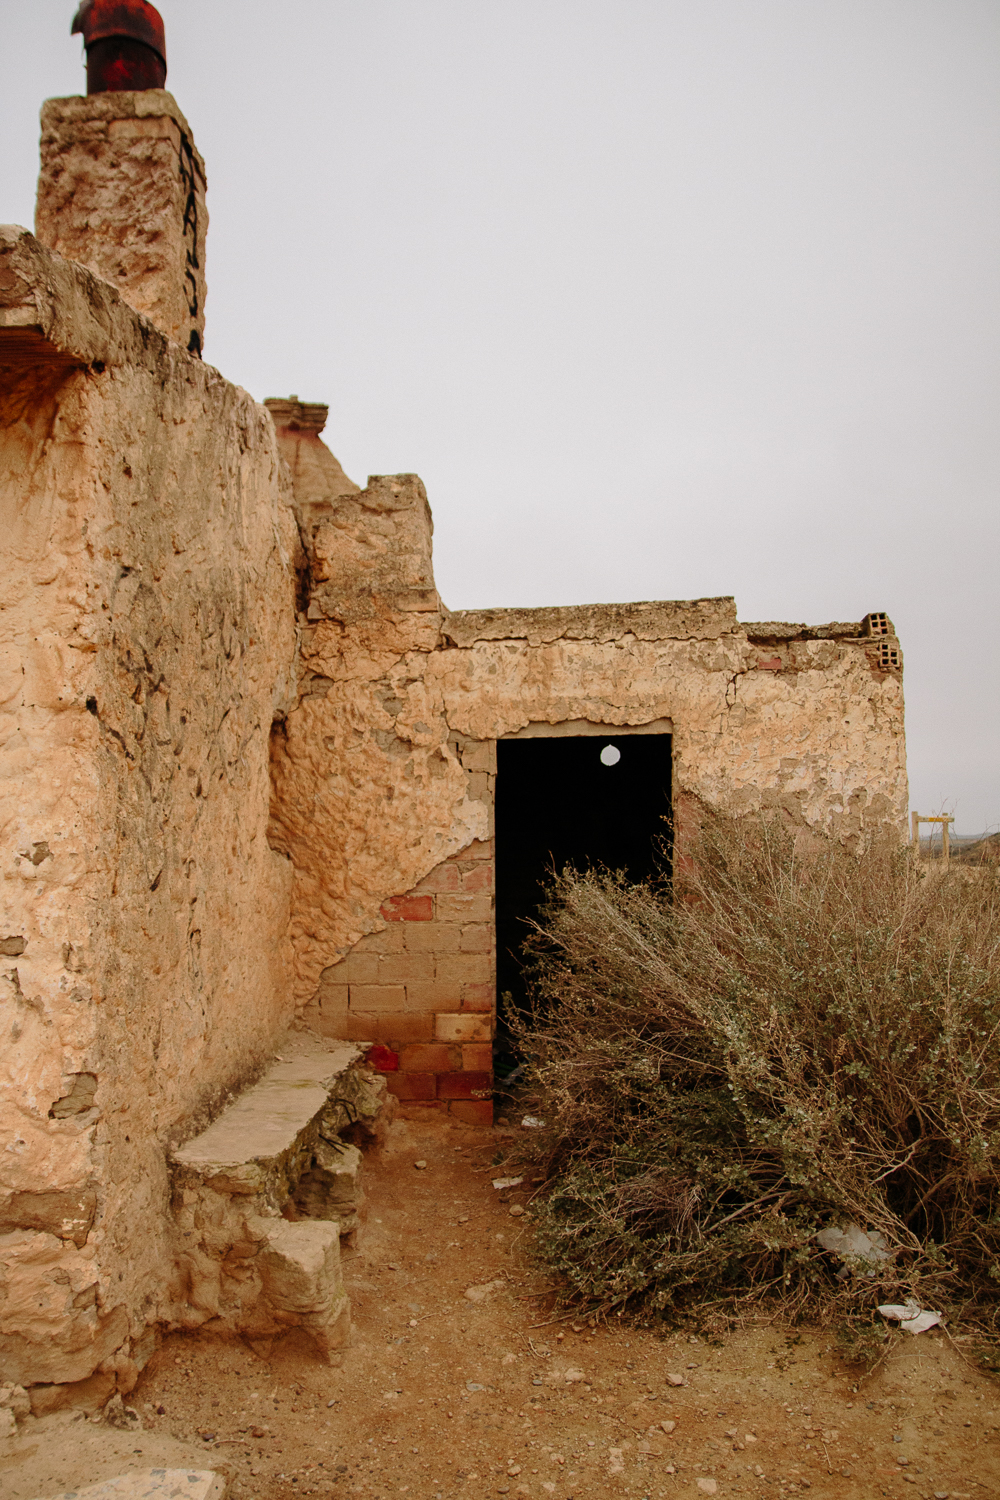 Abandoned Building in the Bardenas Reales desert in Navarre, Northern Spain